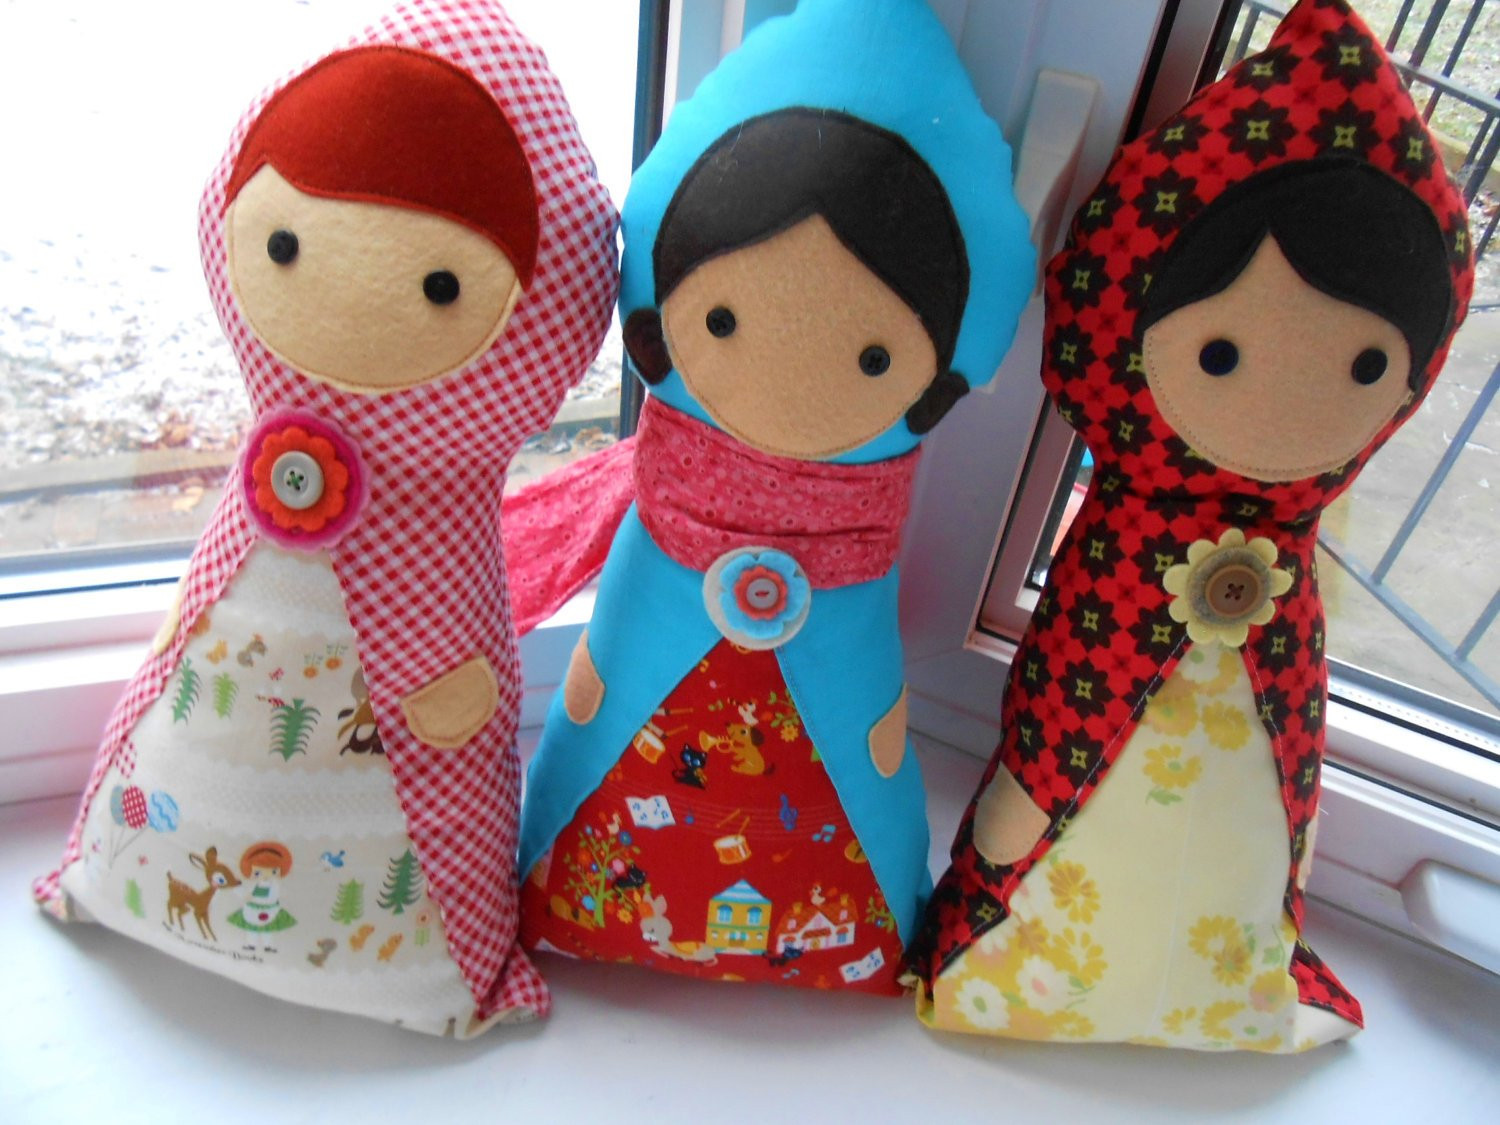 Doll Patterns Inspirational Little Traveller Doll Pdf Sewing Pattern Rag Doll Of Doll Patterns Luxury Dolls Patterns Free Free Patterns